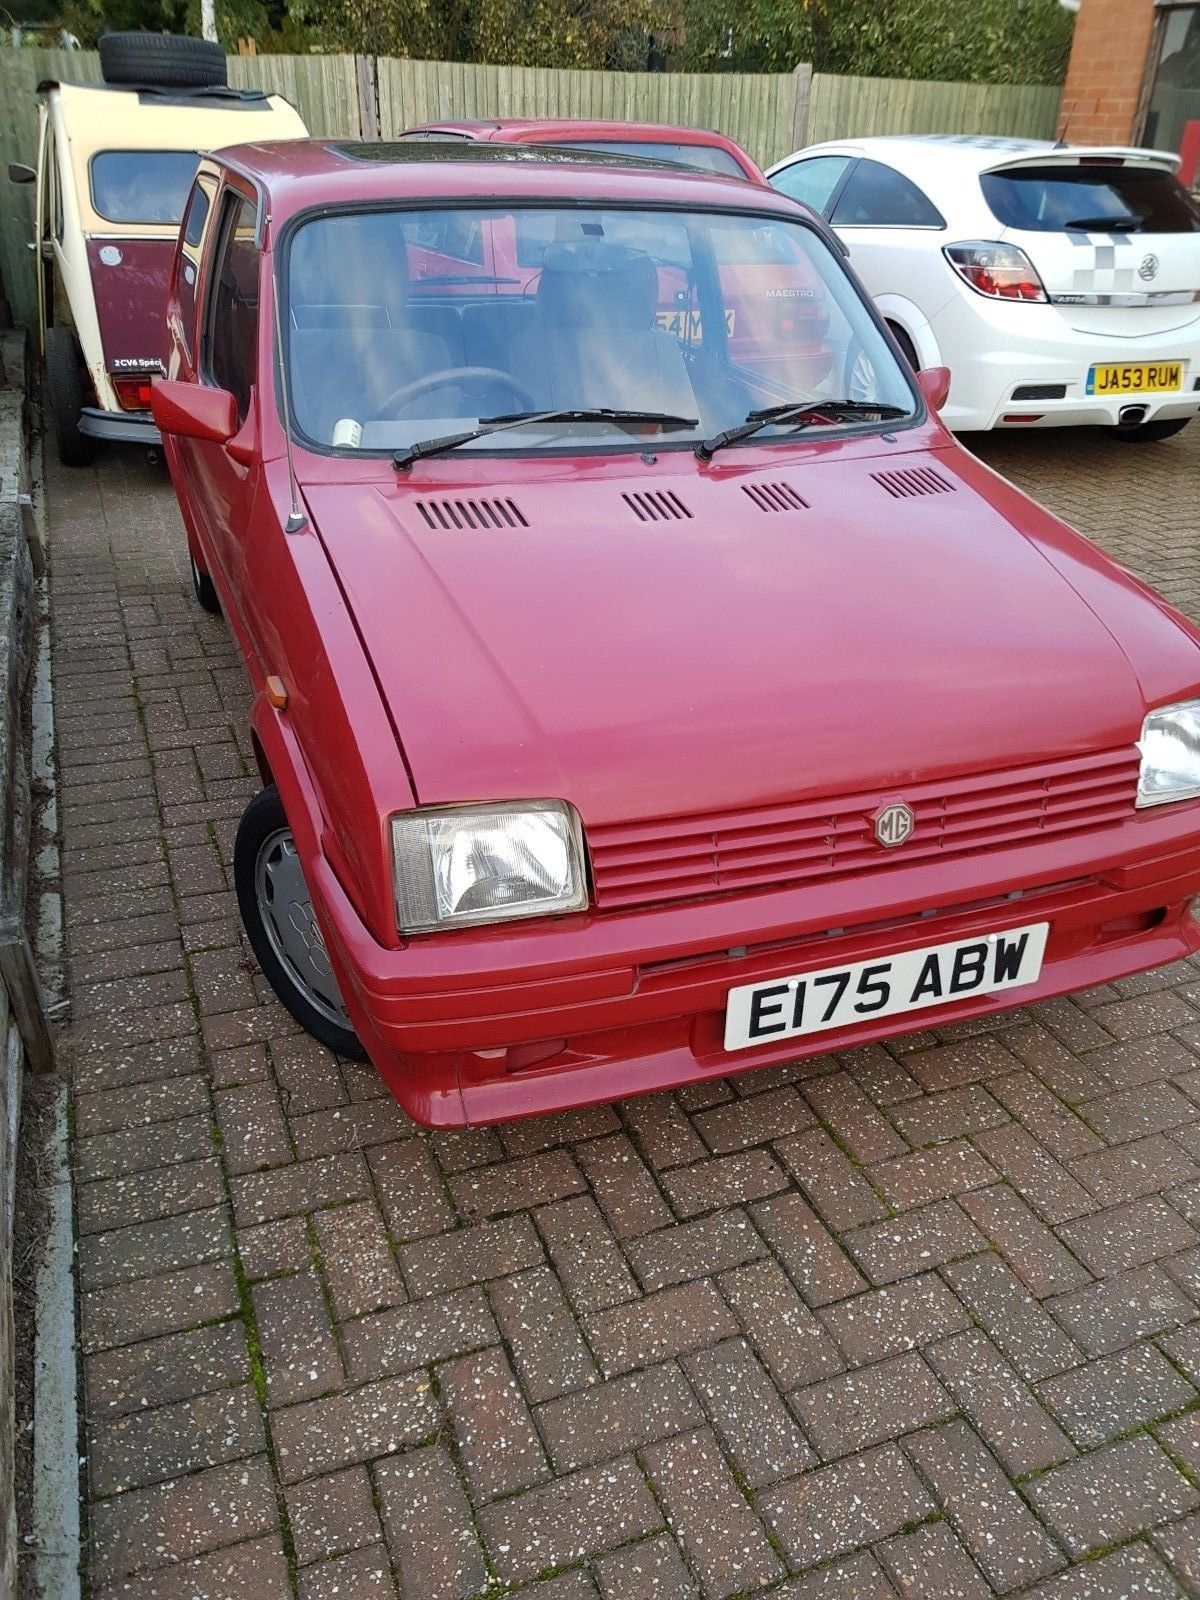 This Mg Metro Turbo Project Spares Or Repair Barn Find Rare Mini